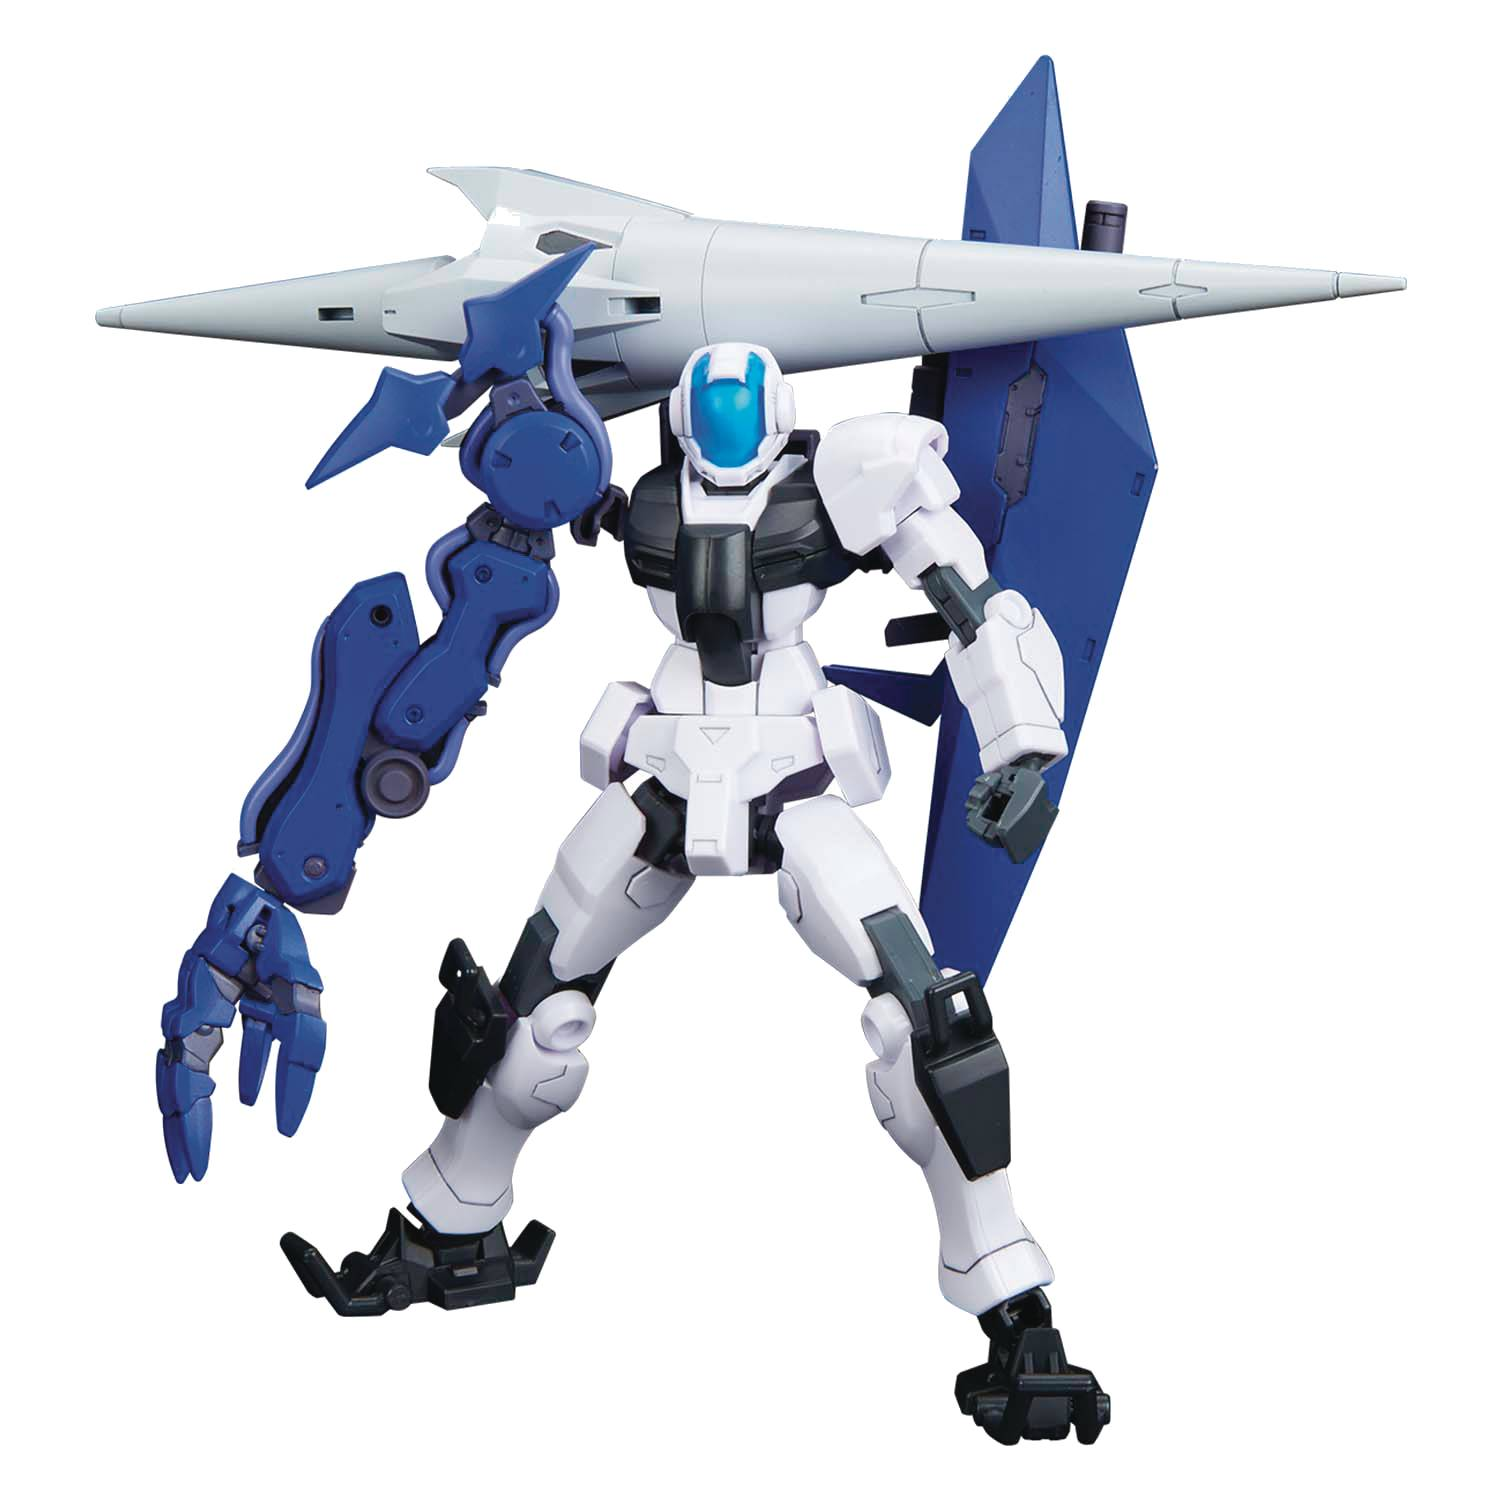 GUNDAM BUILD DIVERS 15 SELTSAM ARMS 1/144 HGBD MDL KIT